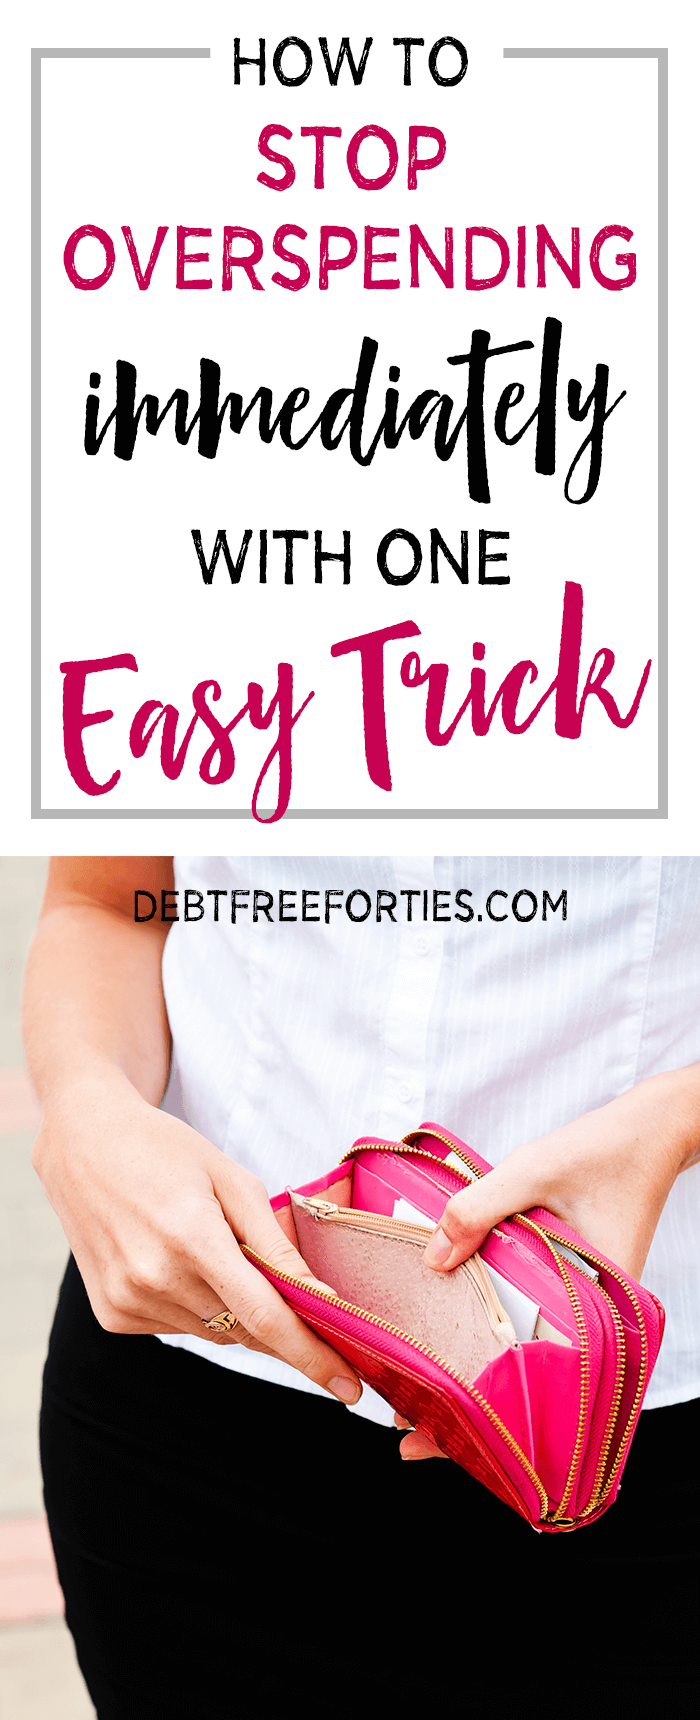 Stop overspending with one easy trick! I have one great trick to help you wrangle your overspending immediately and cut down on buying things that you don't really need. #overspending #finances #budgeting #frugal